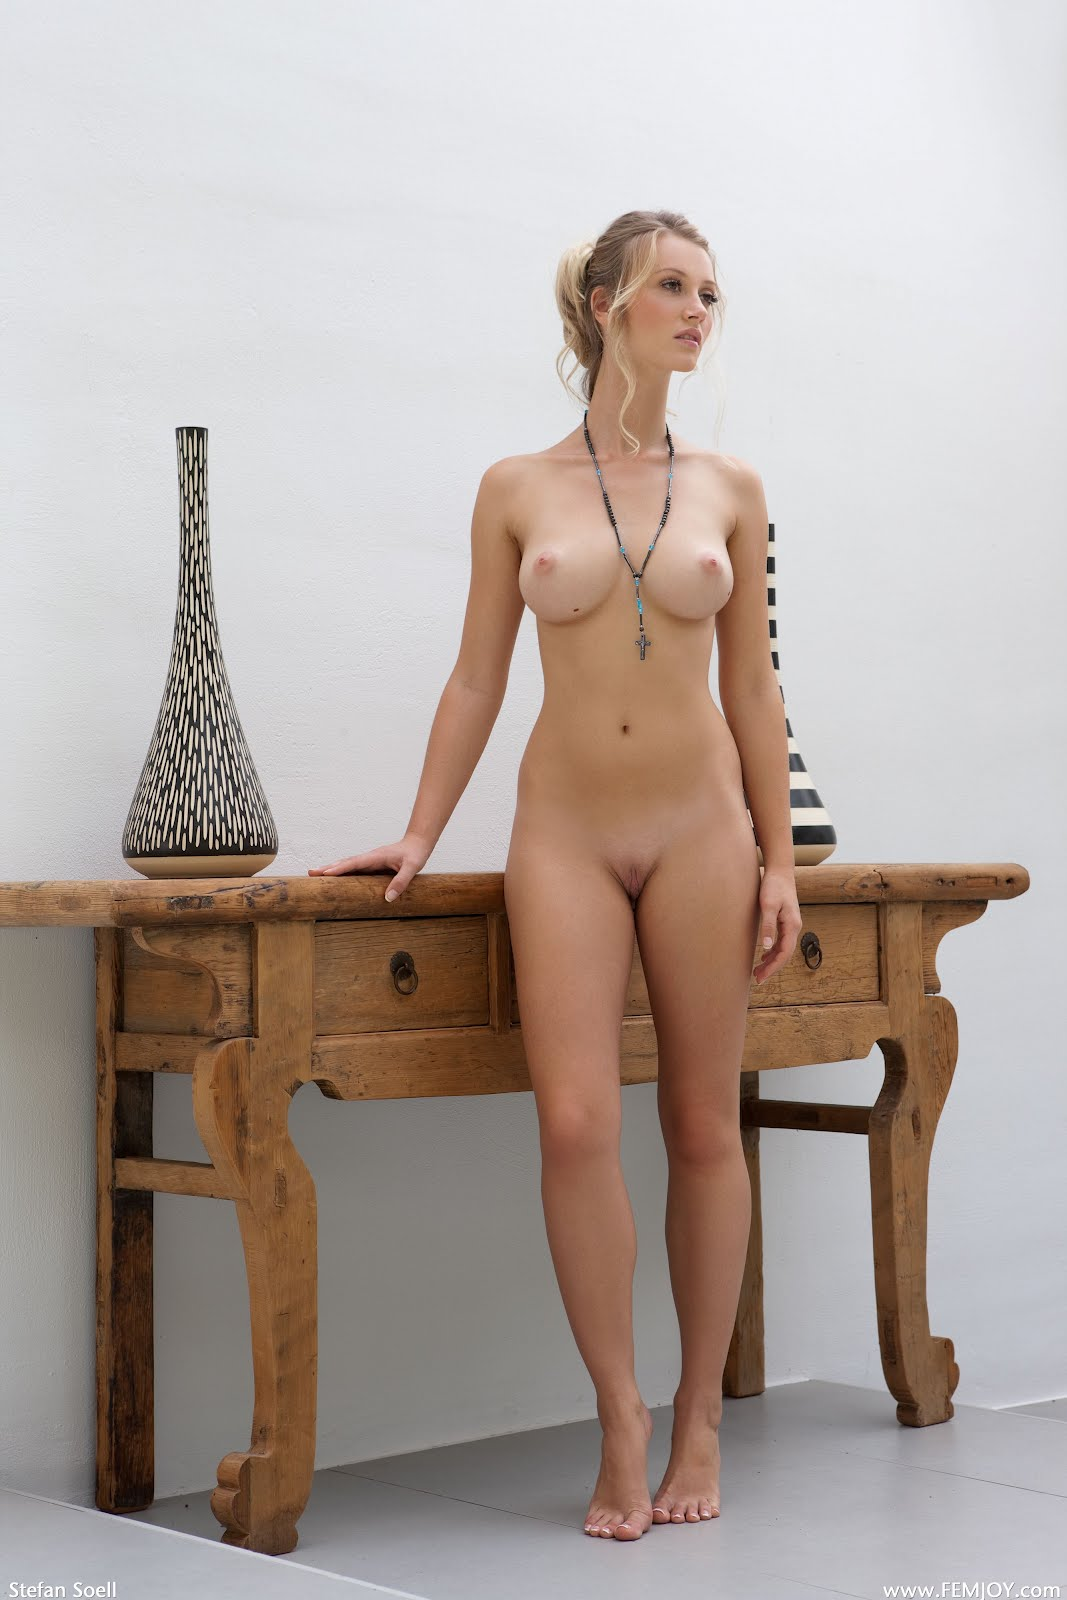 Free full frontal nude female celebrity videos